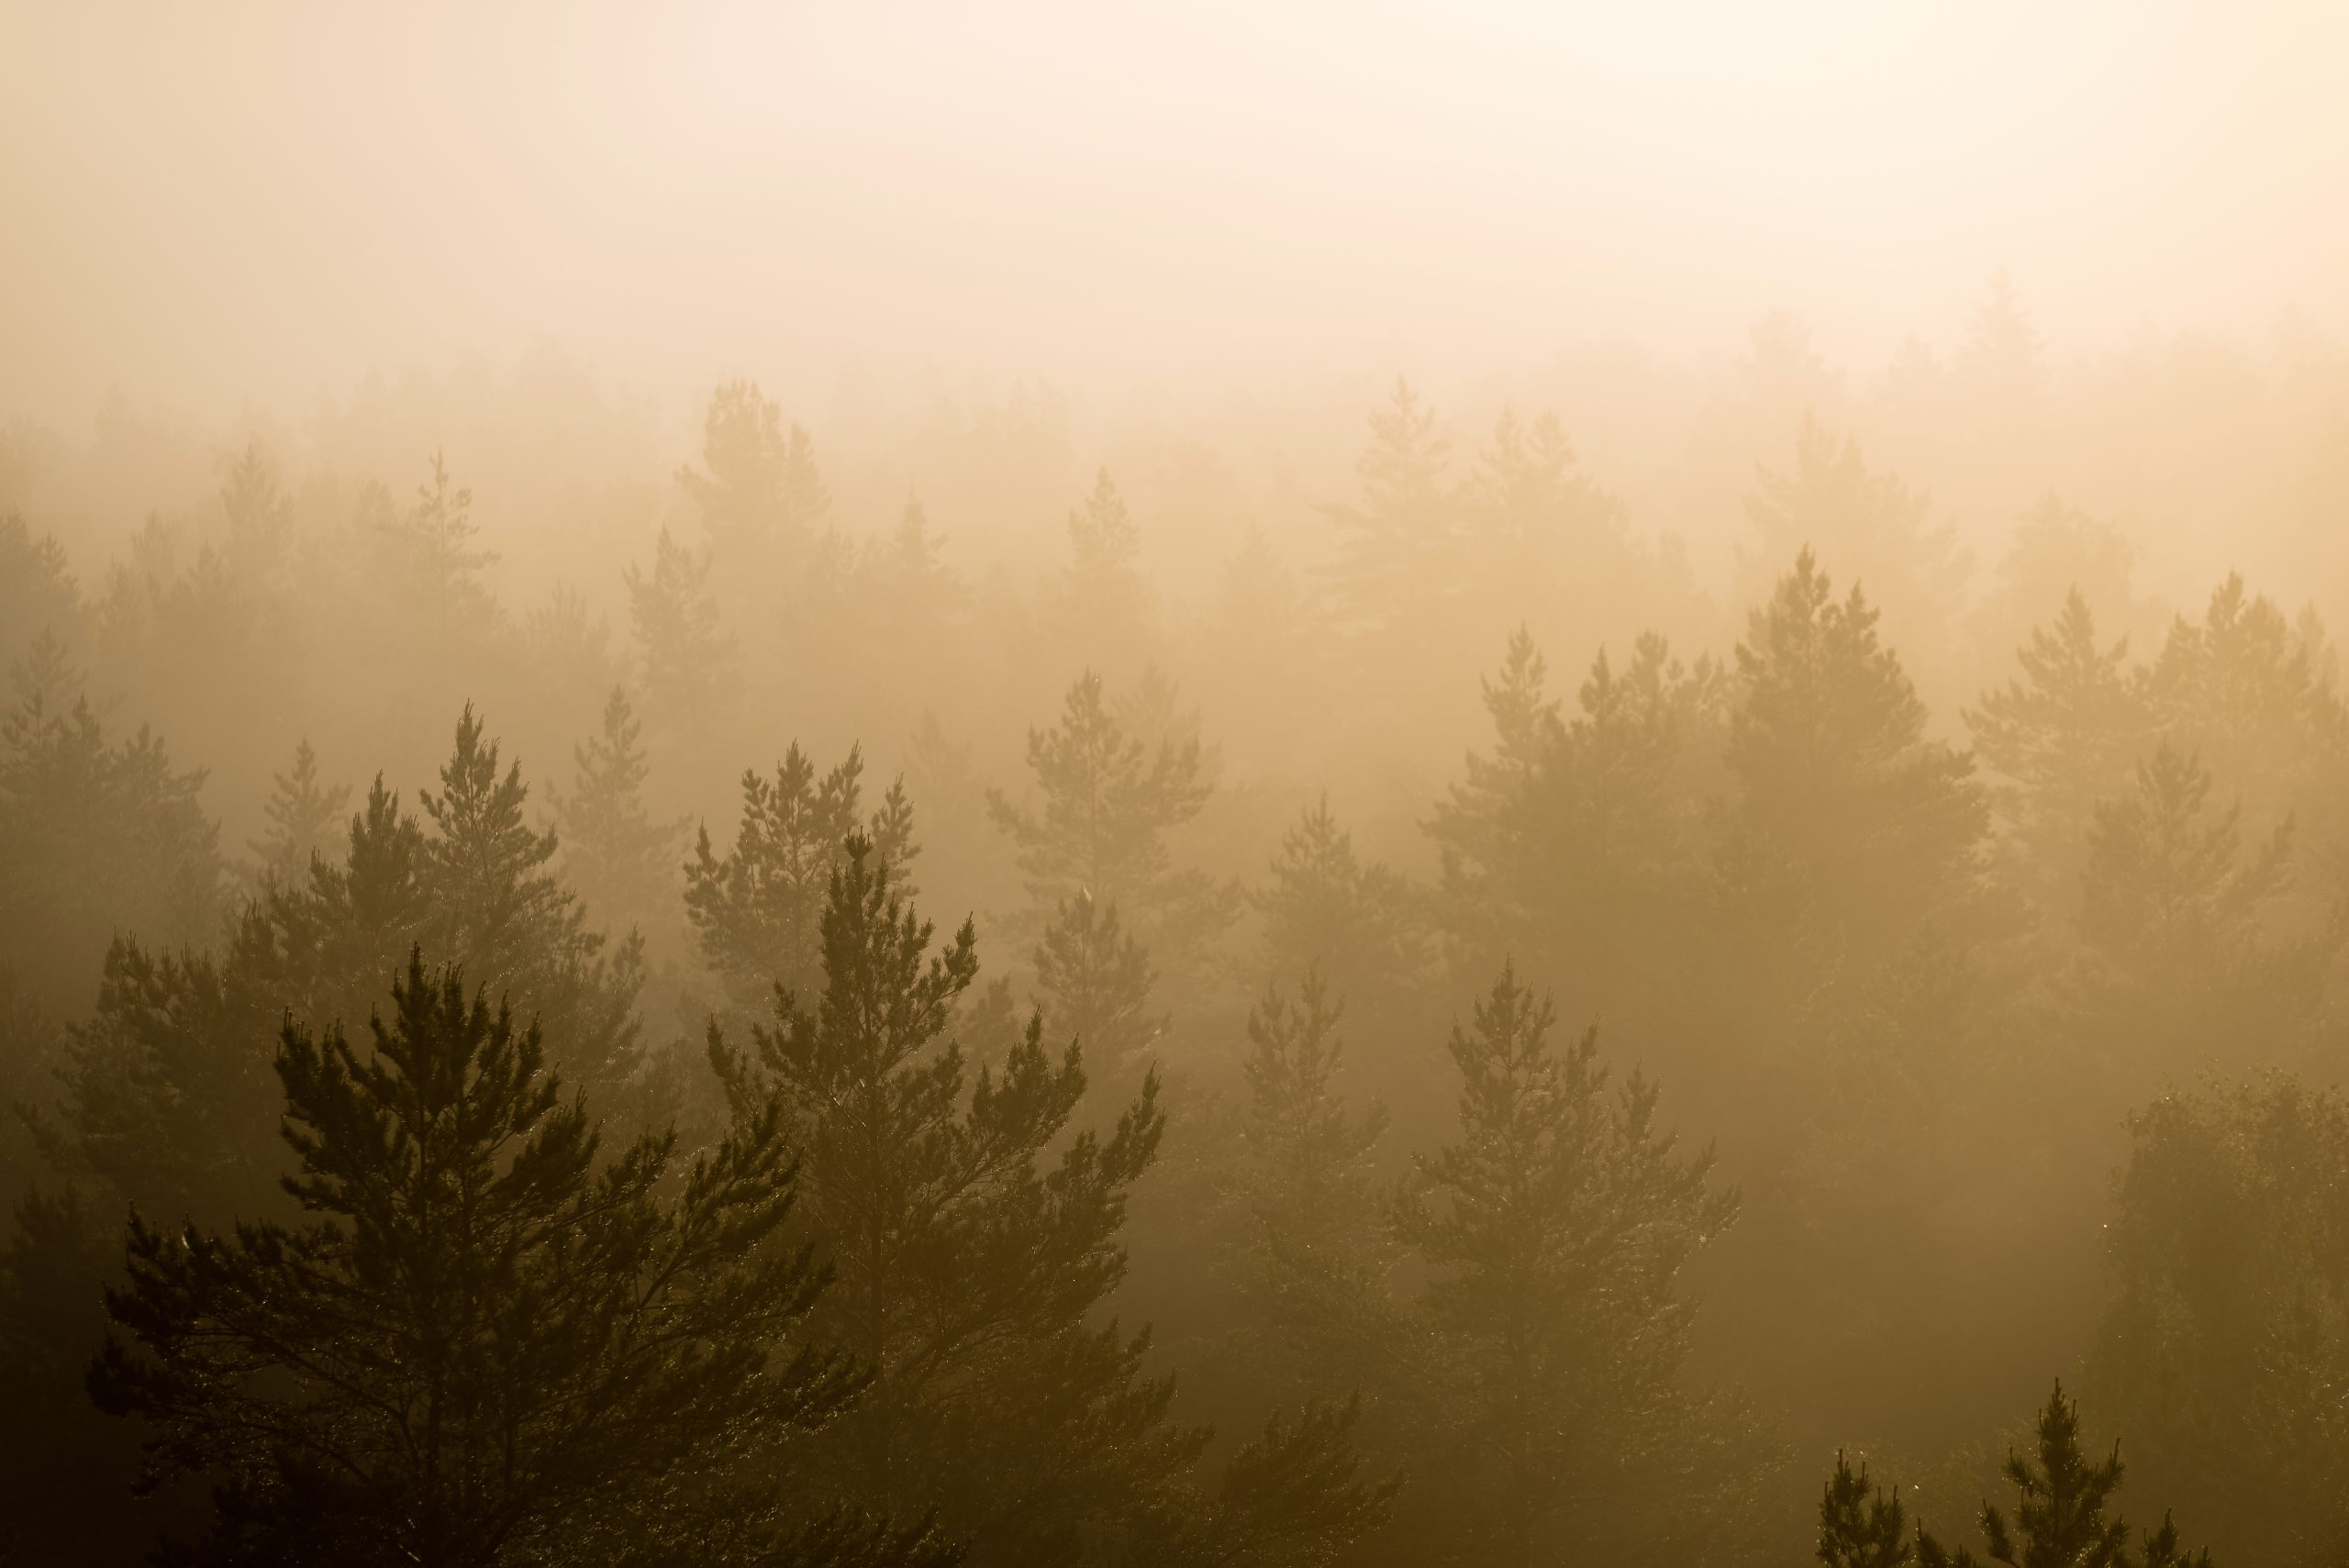 panoramic view of misty forest at majestic sunrise over trees. far horizon with light rays and lens flare effect